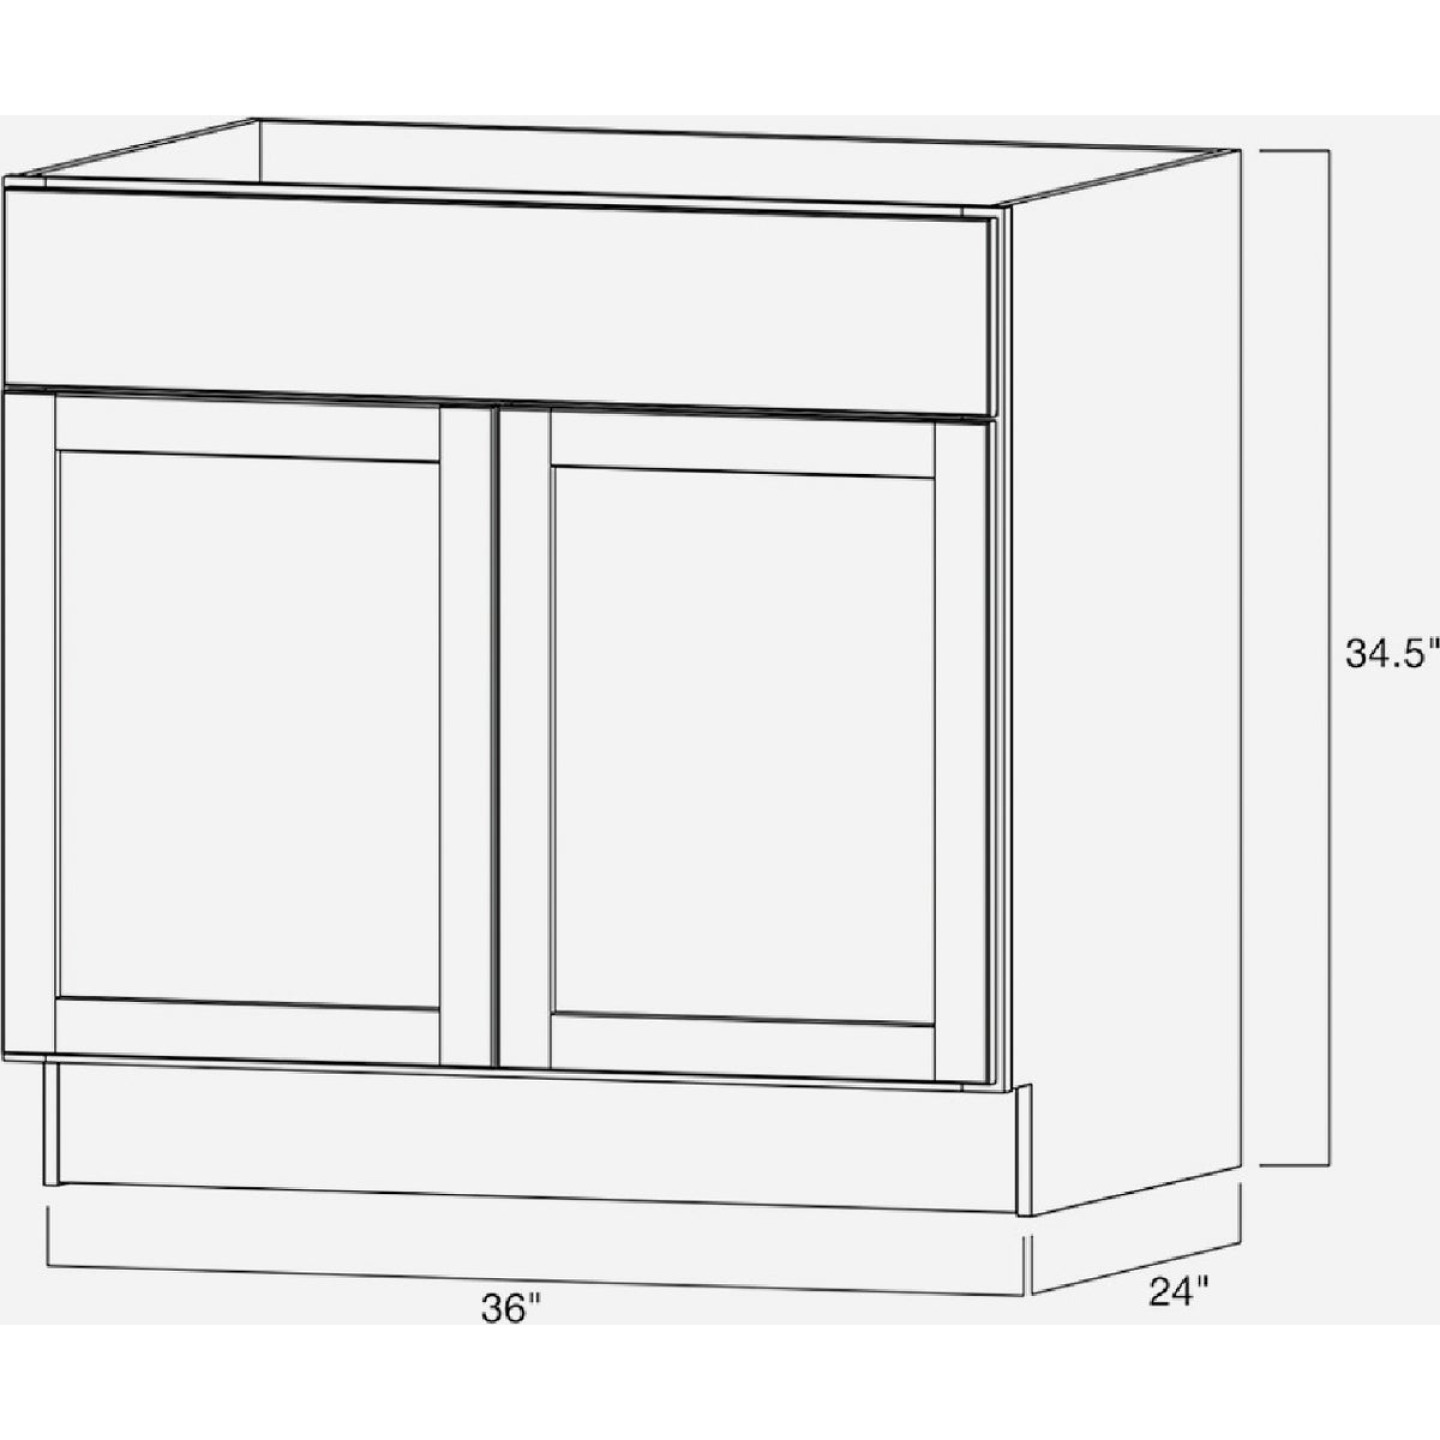 Continental Cabinets Andover Shaker 36 In. W x 34-1/2 In. H x 24 In. D White Thermofoil Sink Base Kitchen Cabinet Image 4